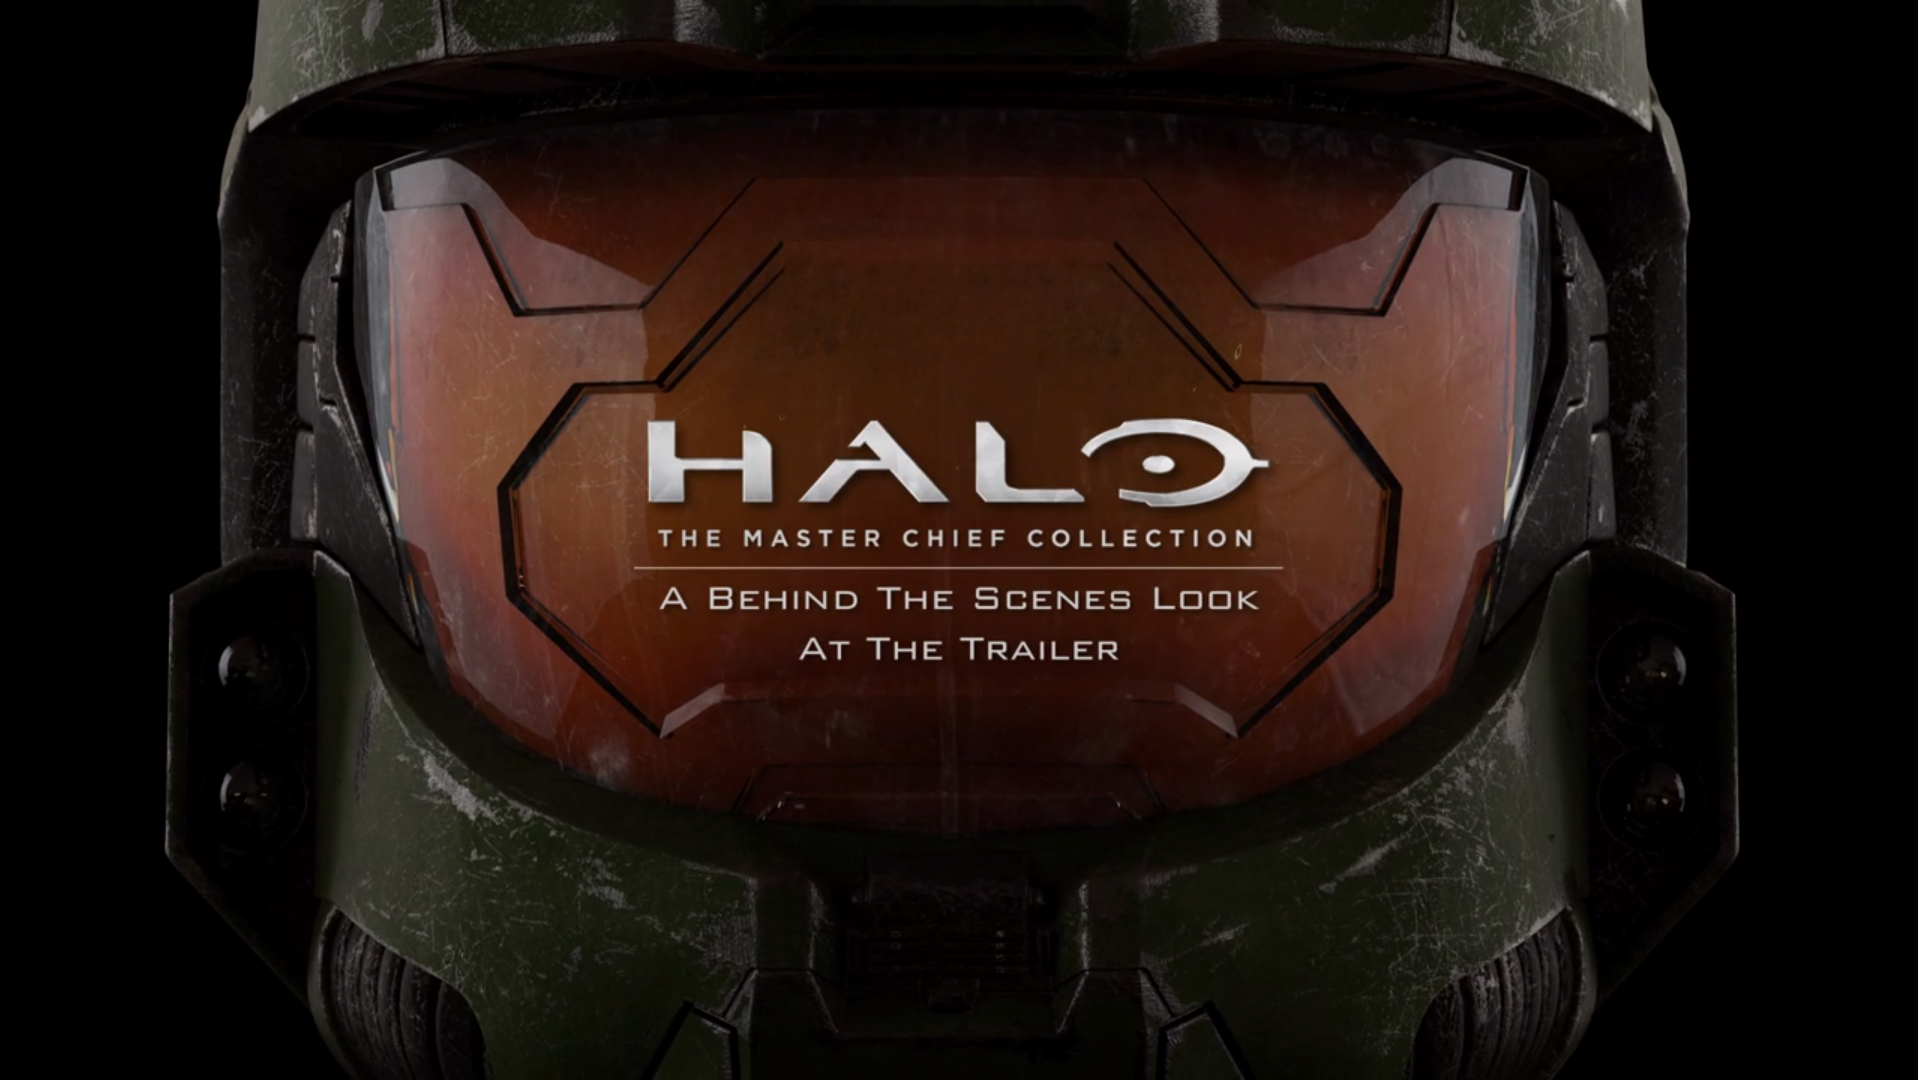 "Halo ""The Master Chief Collection"" Trailer. A behind the scenes look."